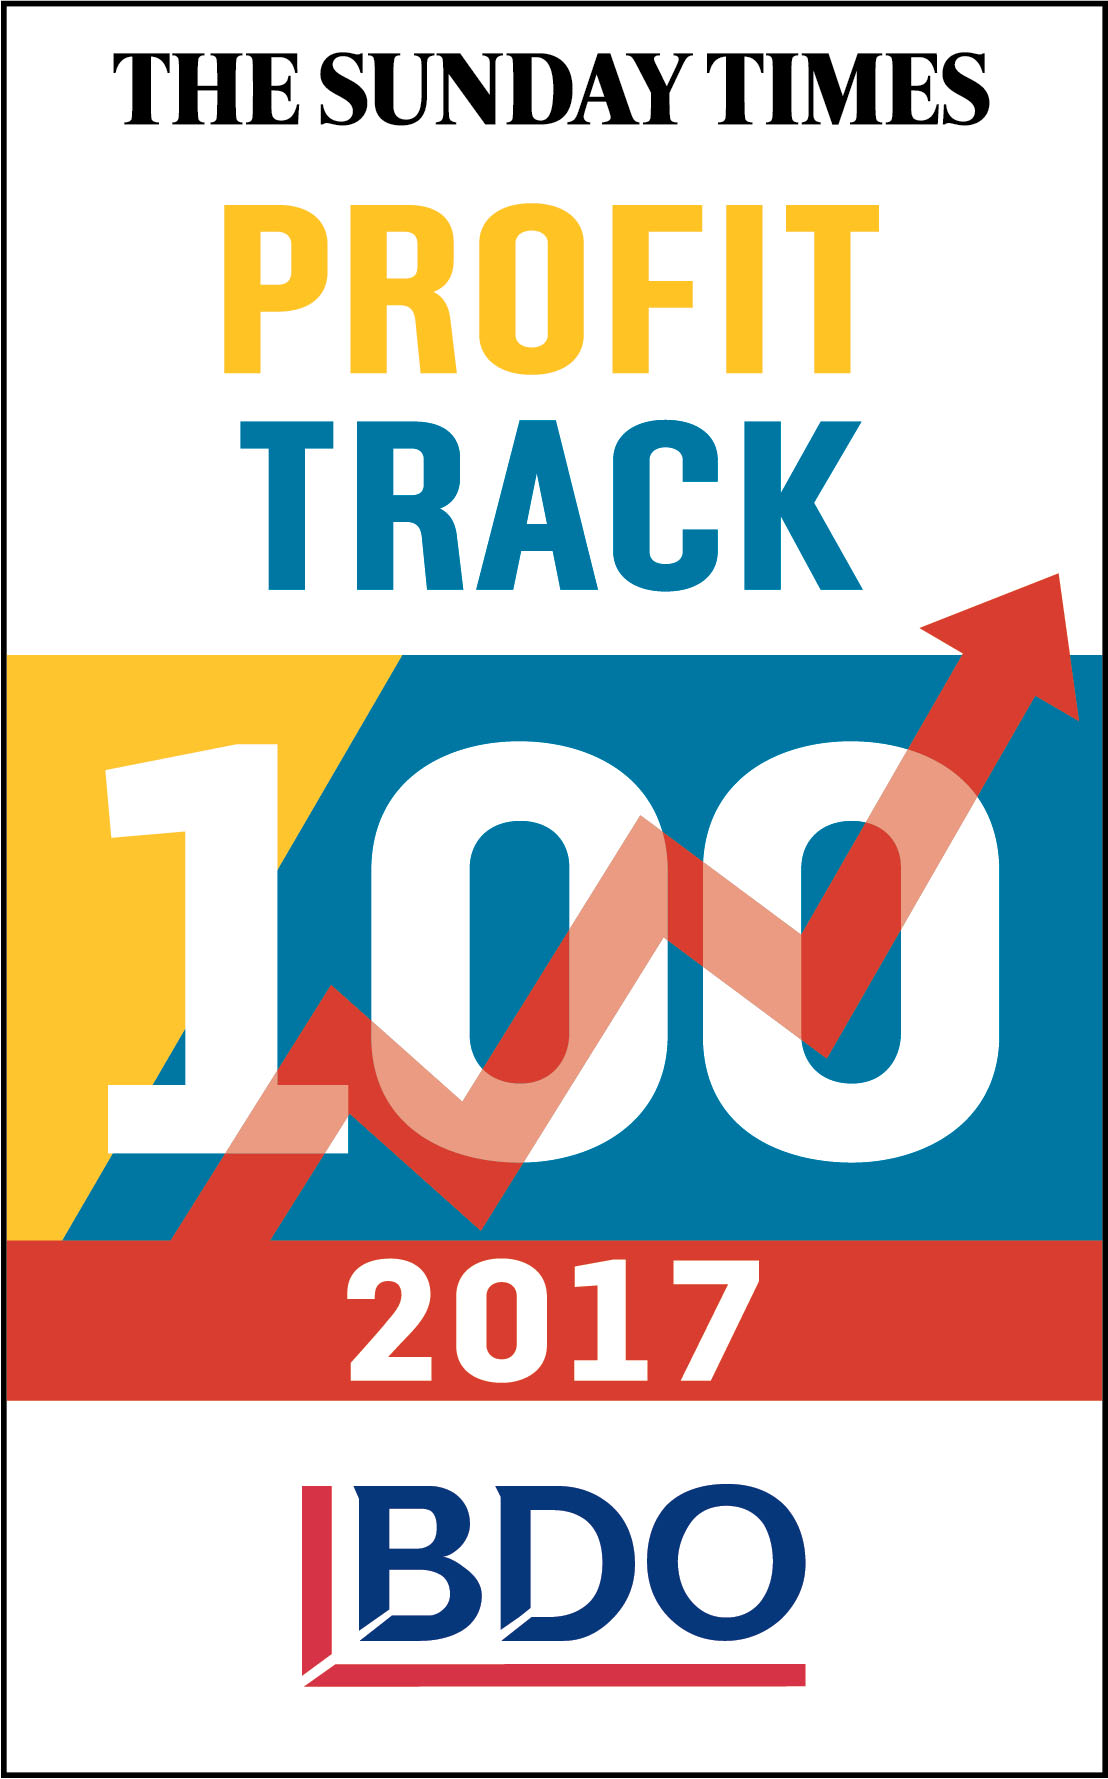 Durbin ranked No.68 in the Sunday Times BDO Profit Track 100 List